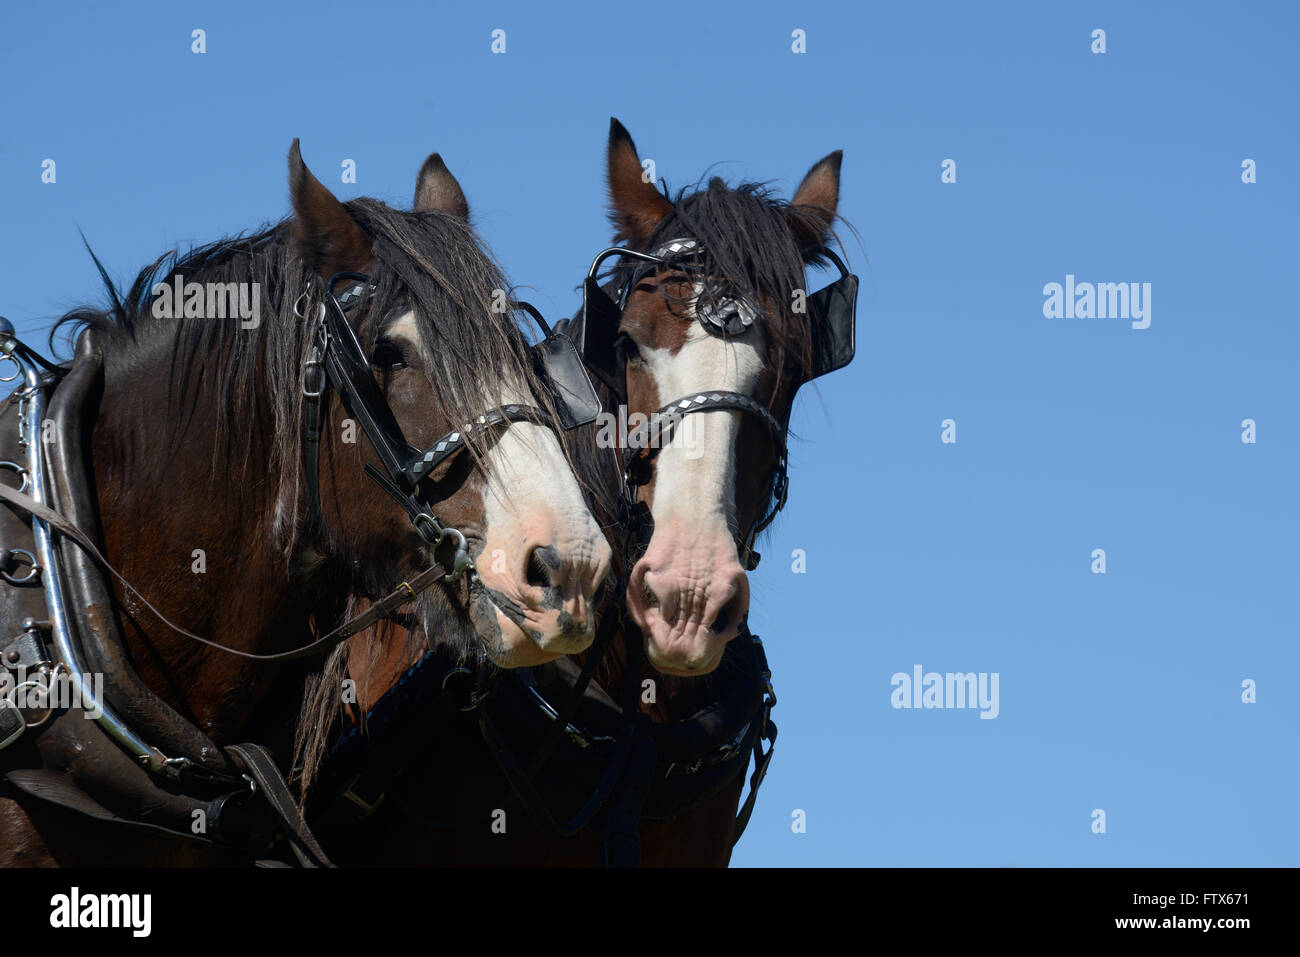 A pair of Clydesdales horses harnessed and ready for work - Stock Image